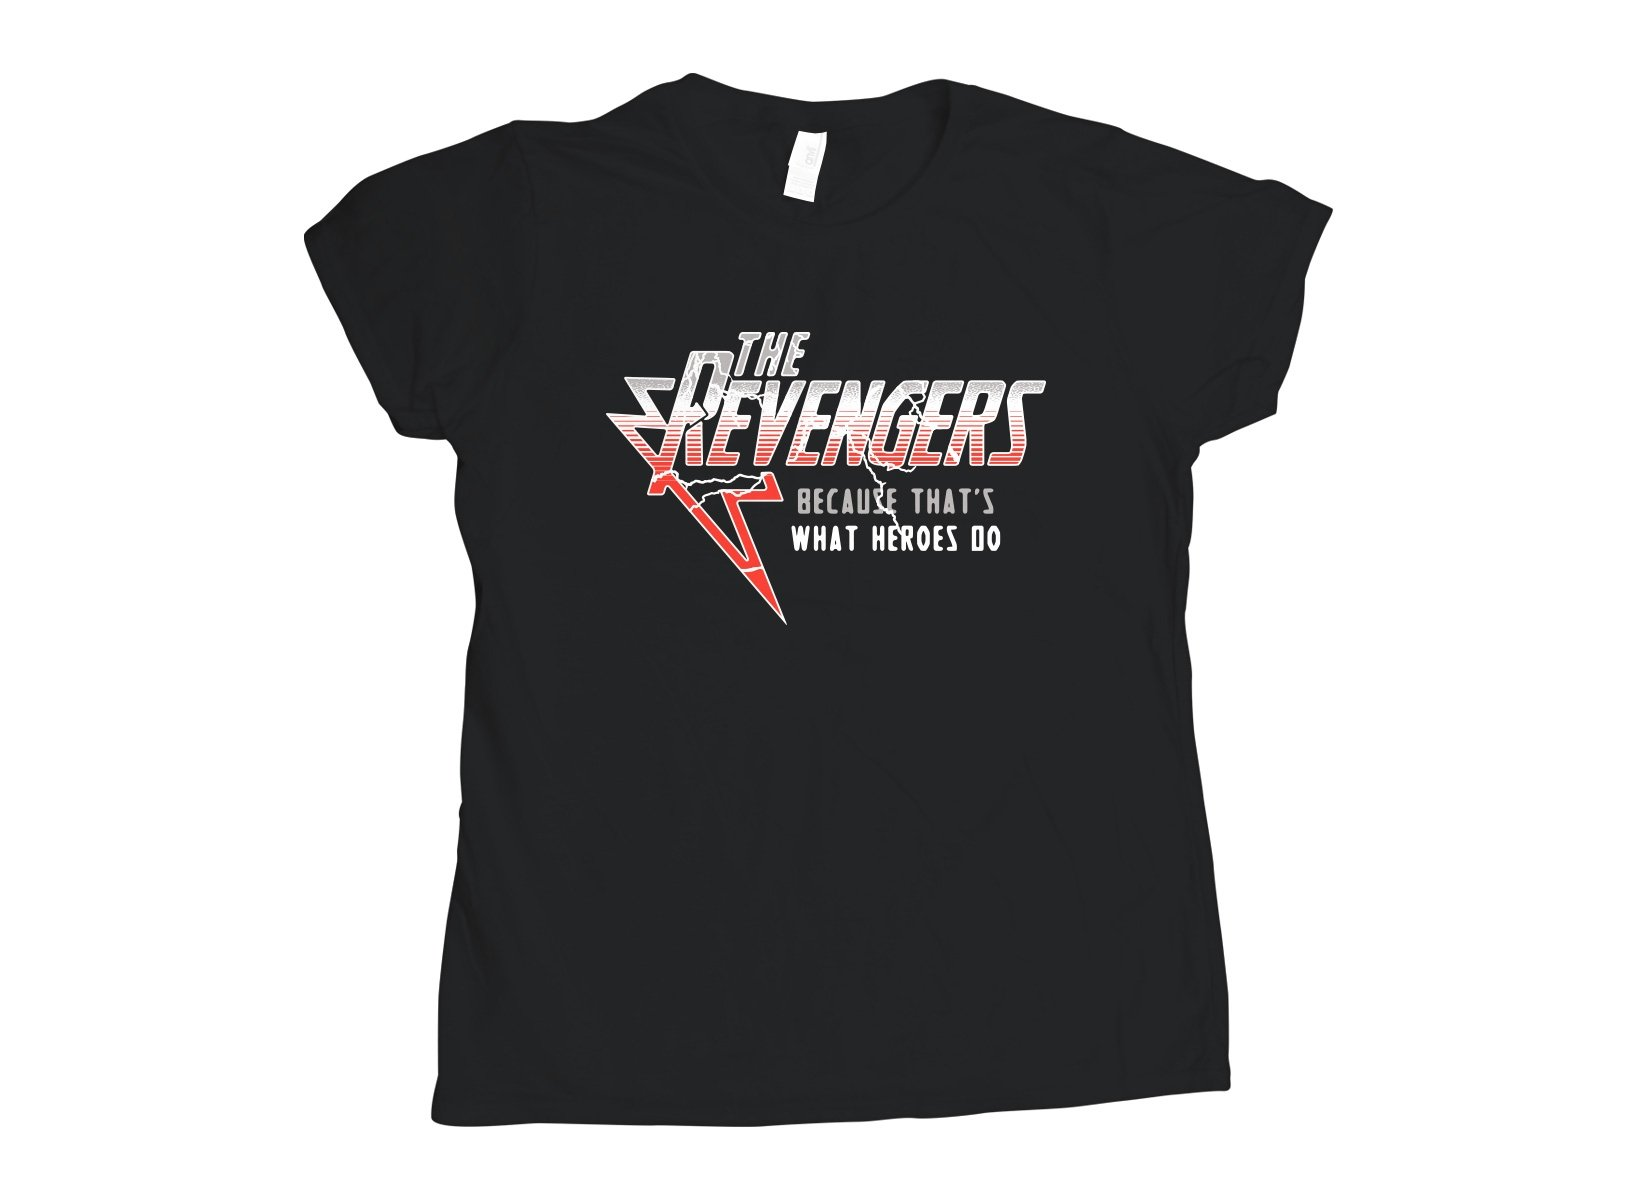 The Revengers on Womens T-Shirt